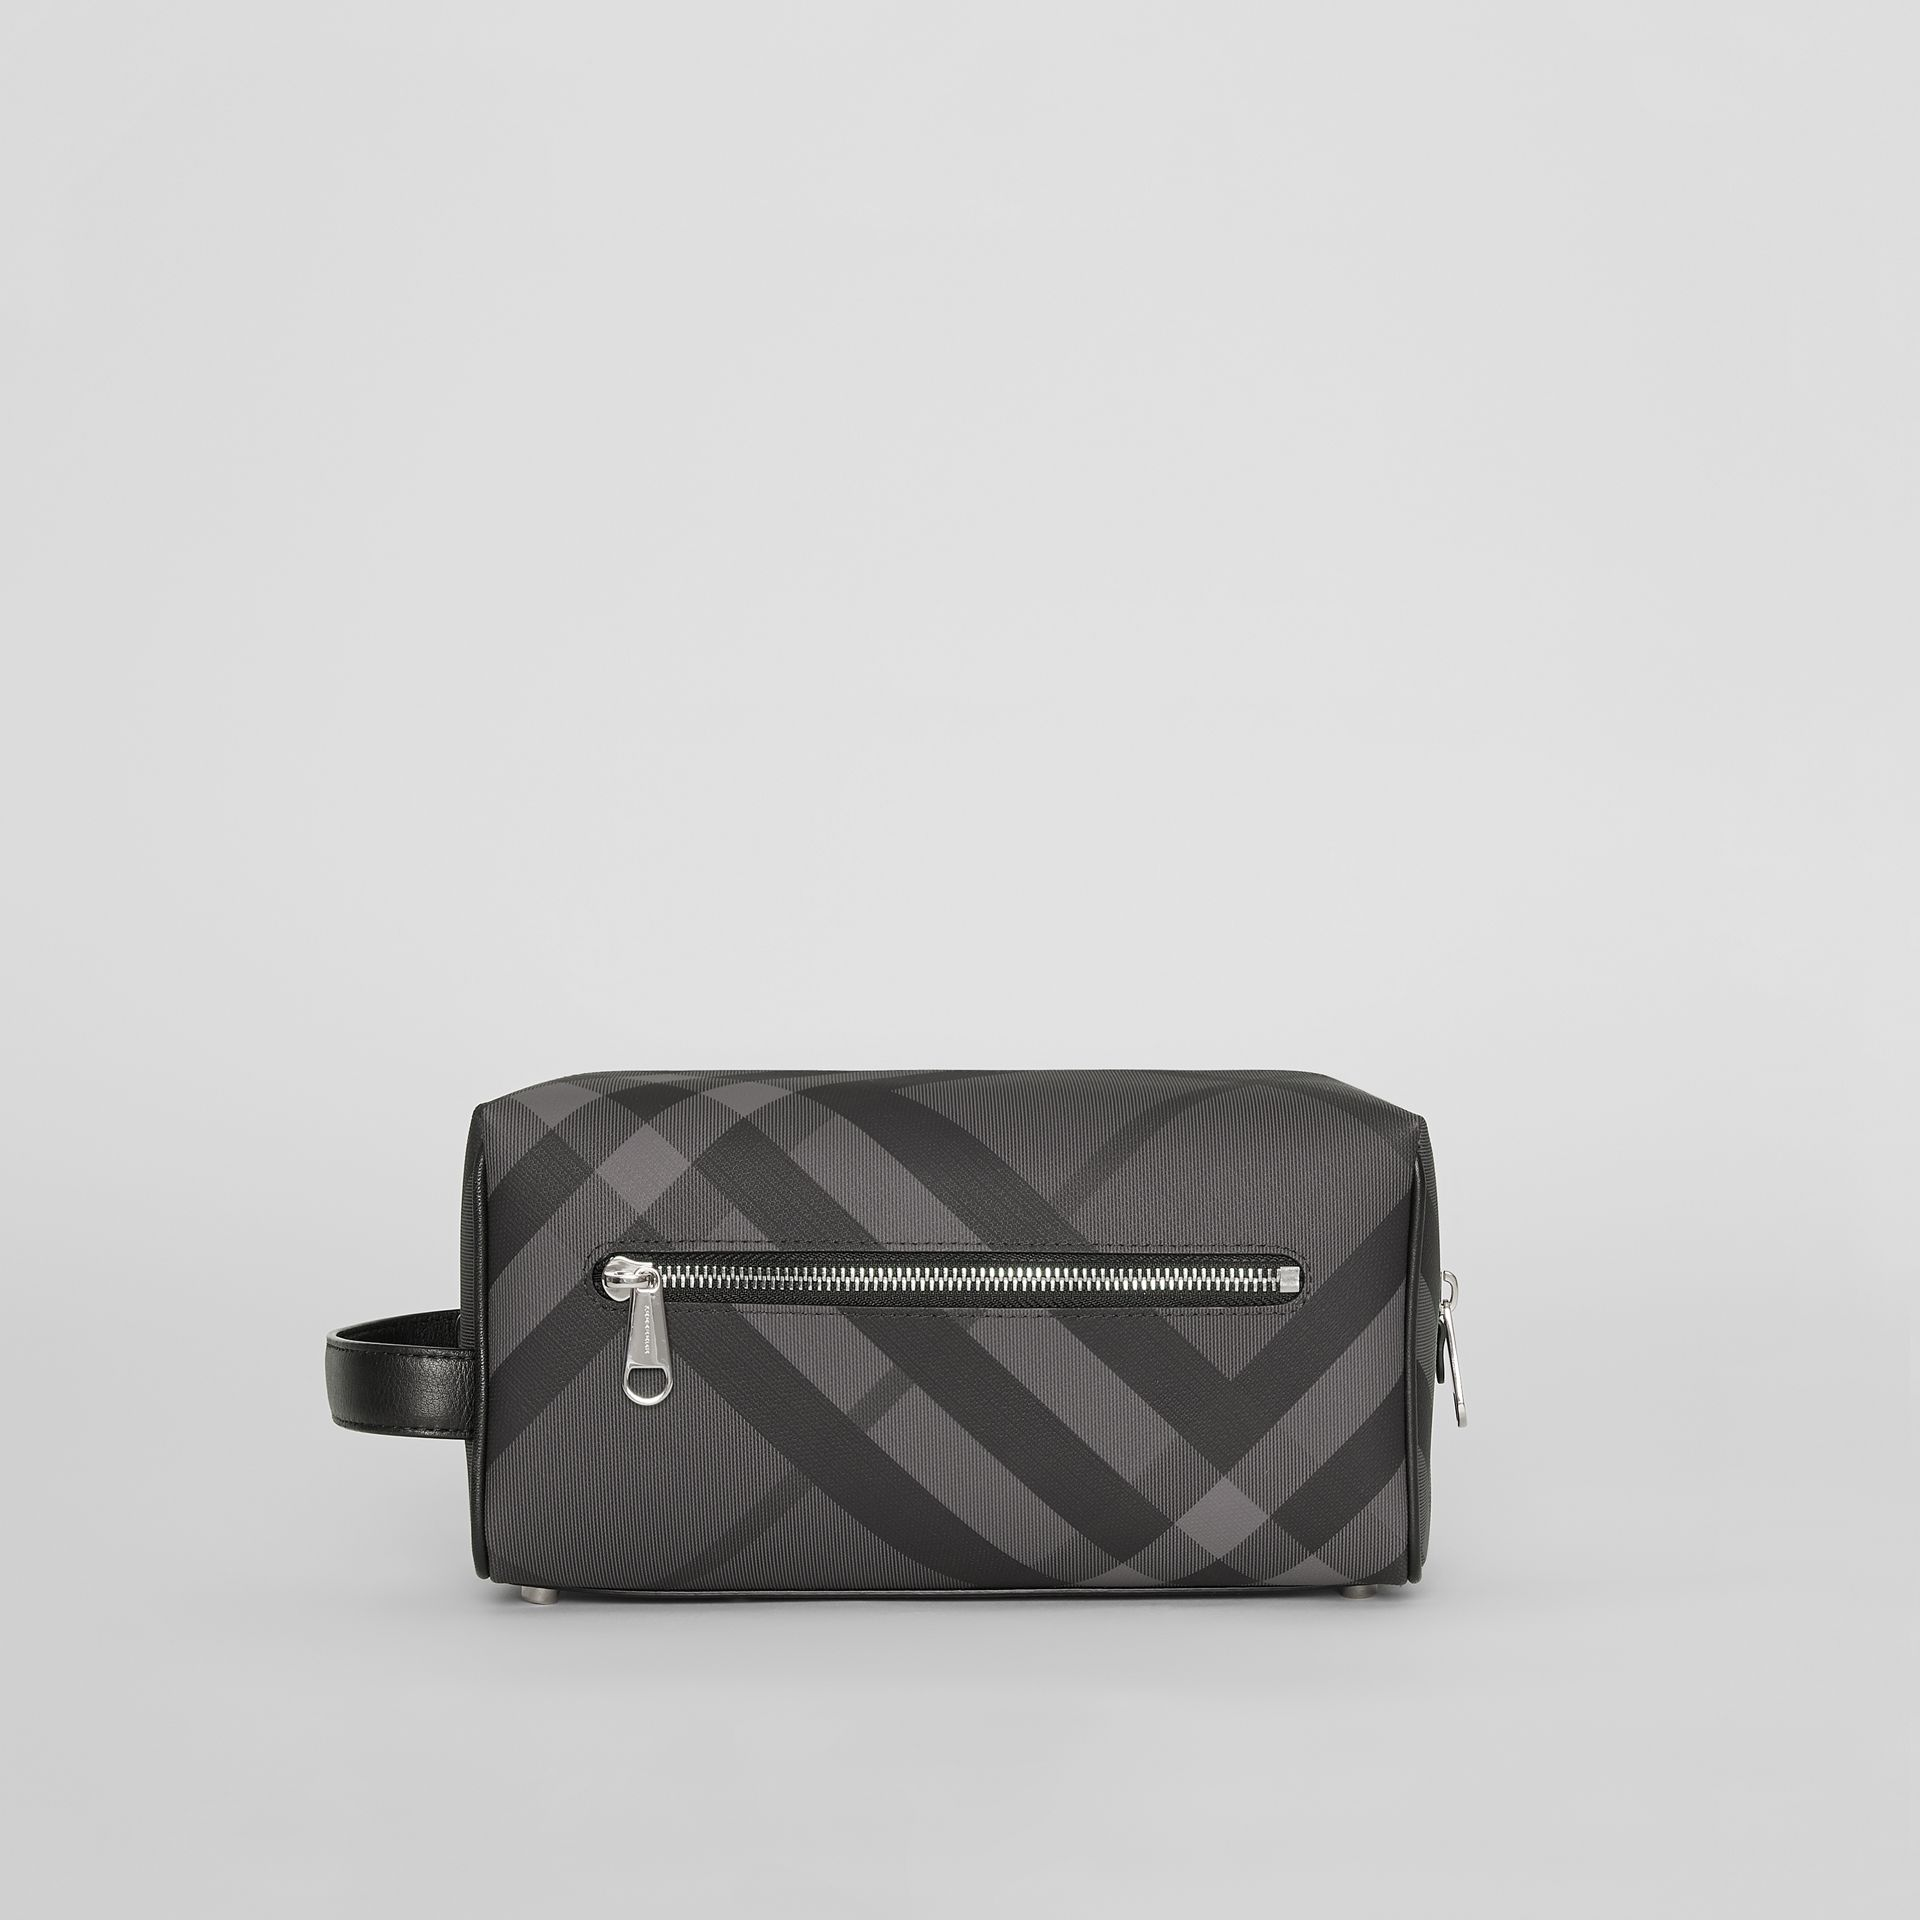 Pochette en cuir à motif London check (Anthracite/noir) - Homme | Burberry - photo de la galerie 7